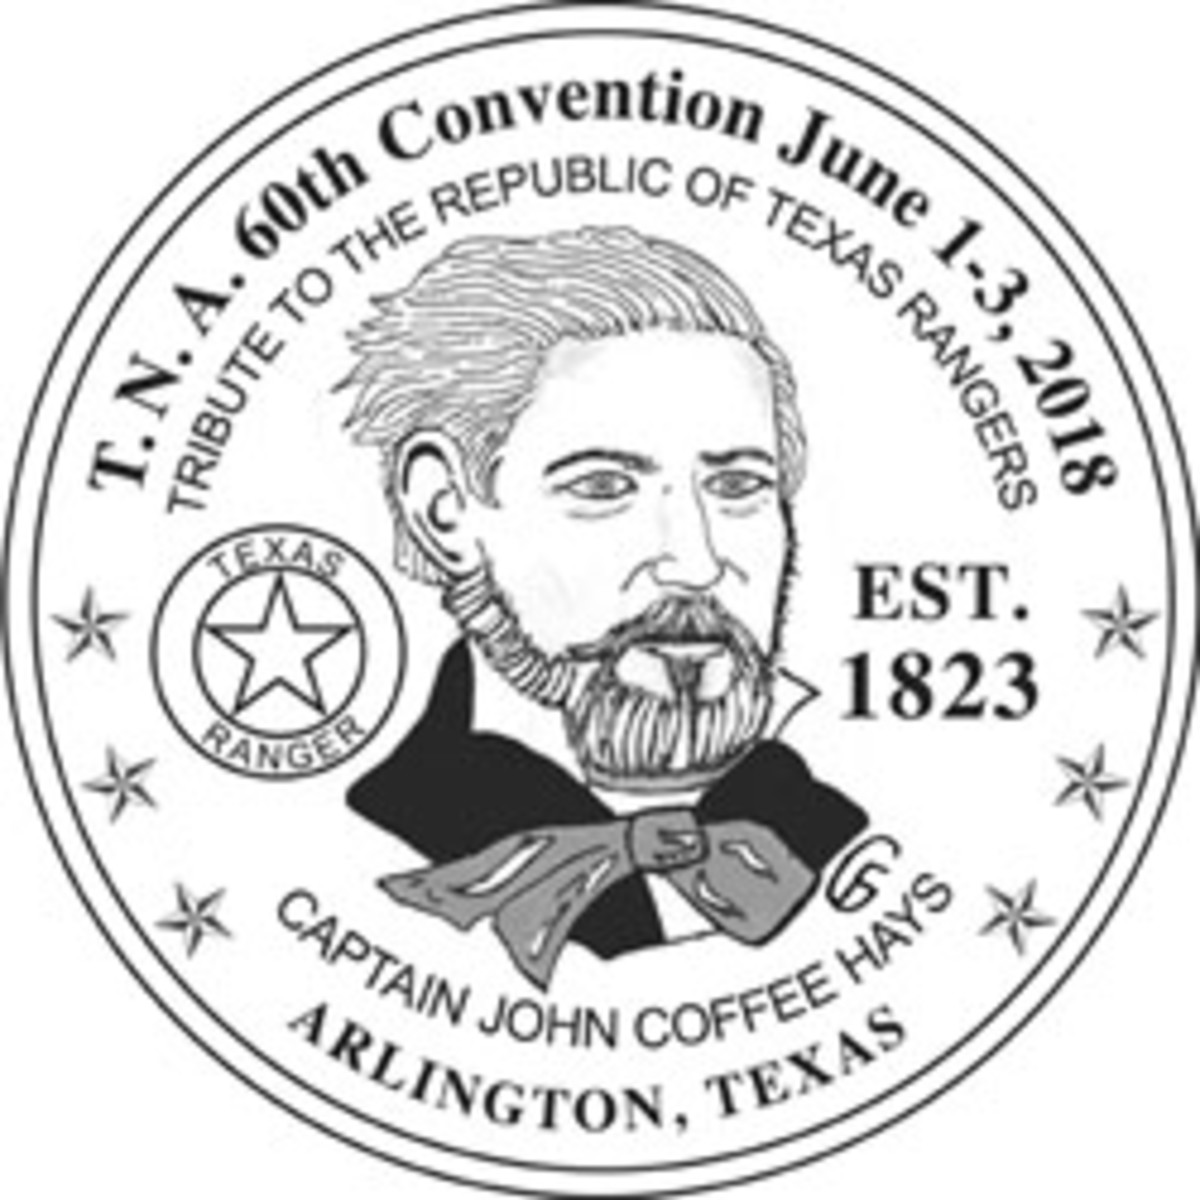 John C. Hays will appear on the obverse of the 2018 TNA medal.